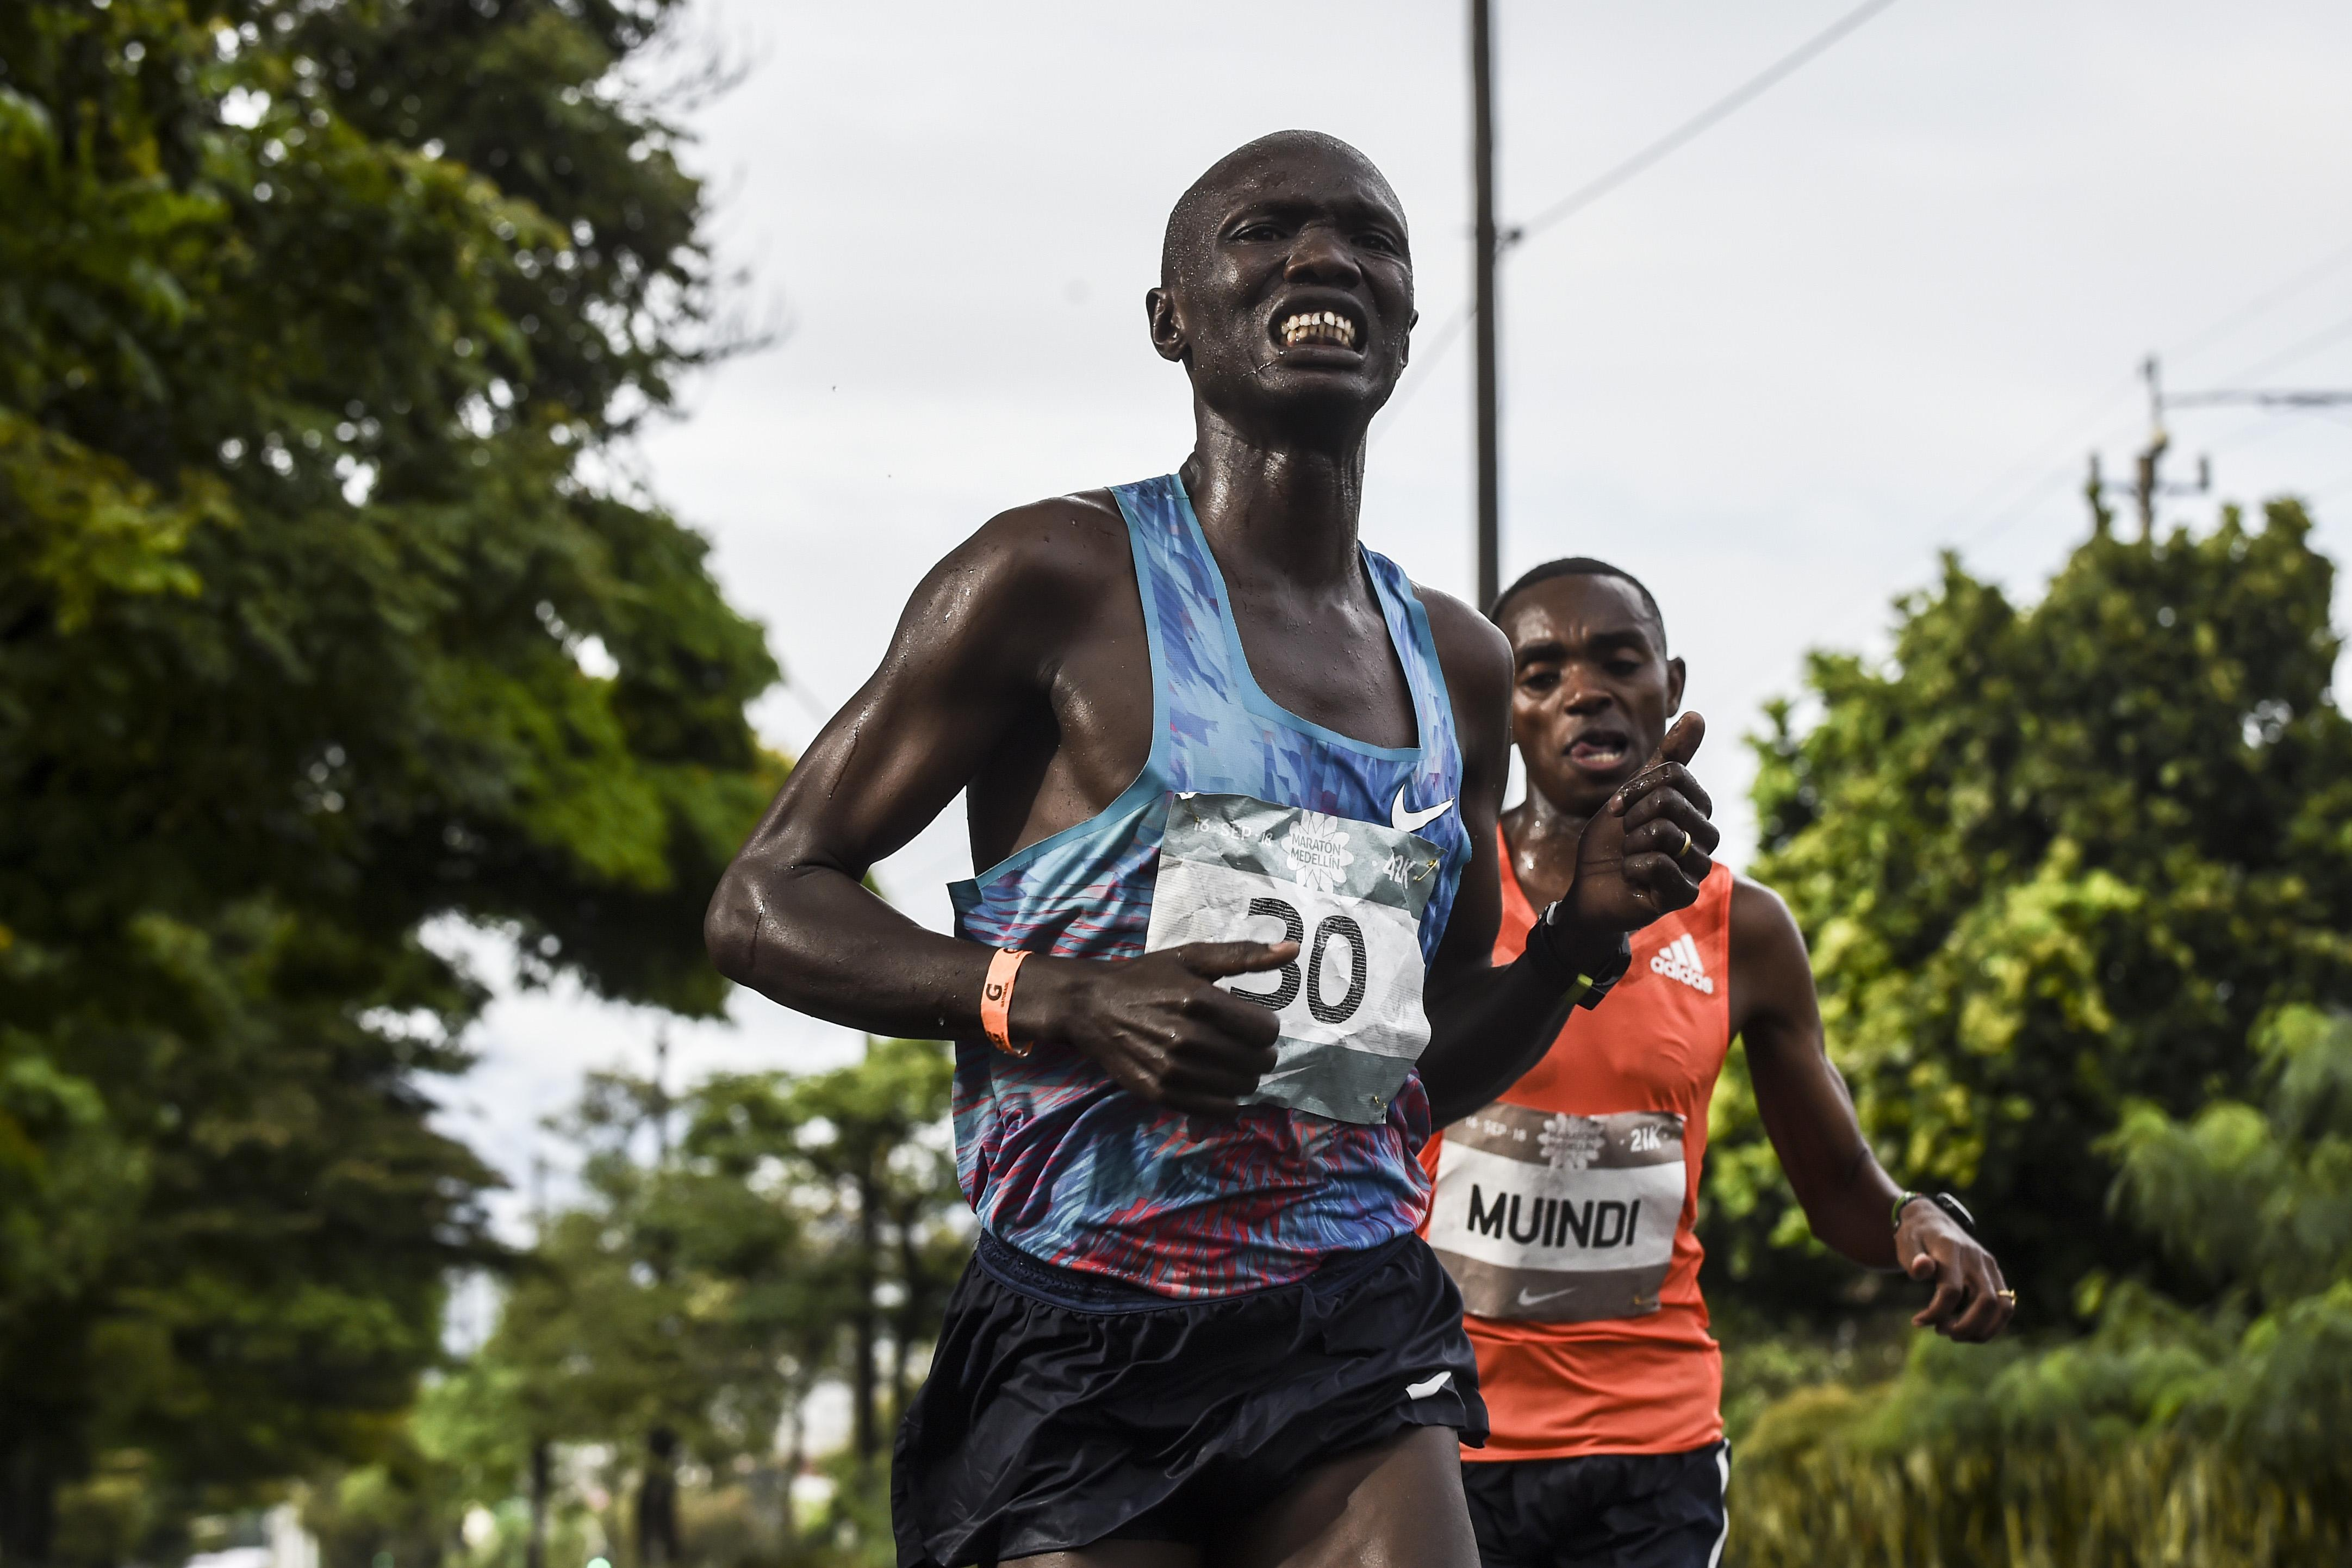 Joseph Kiprono was leading the race before he was cruelly put off his stride